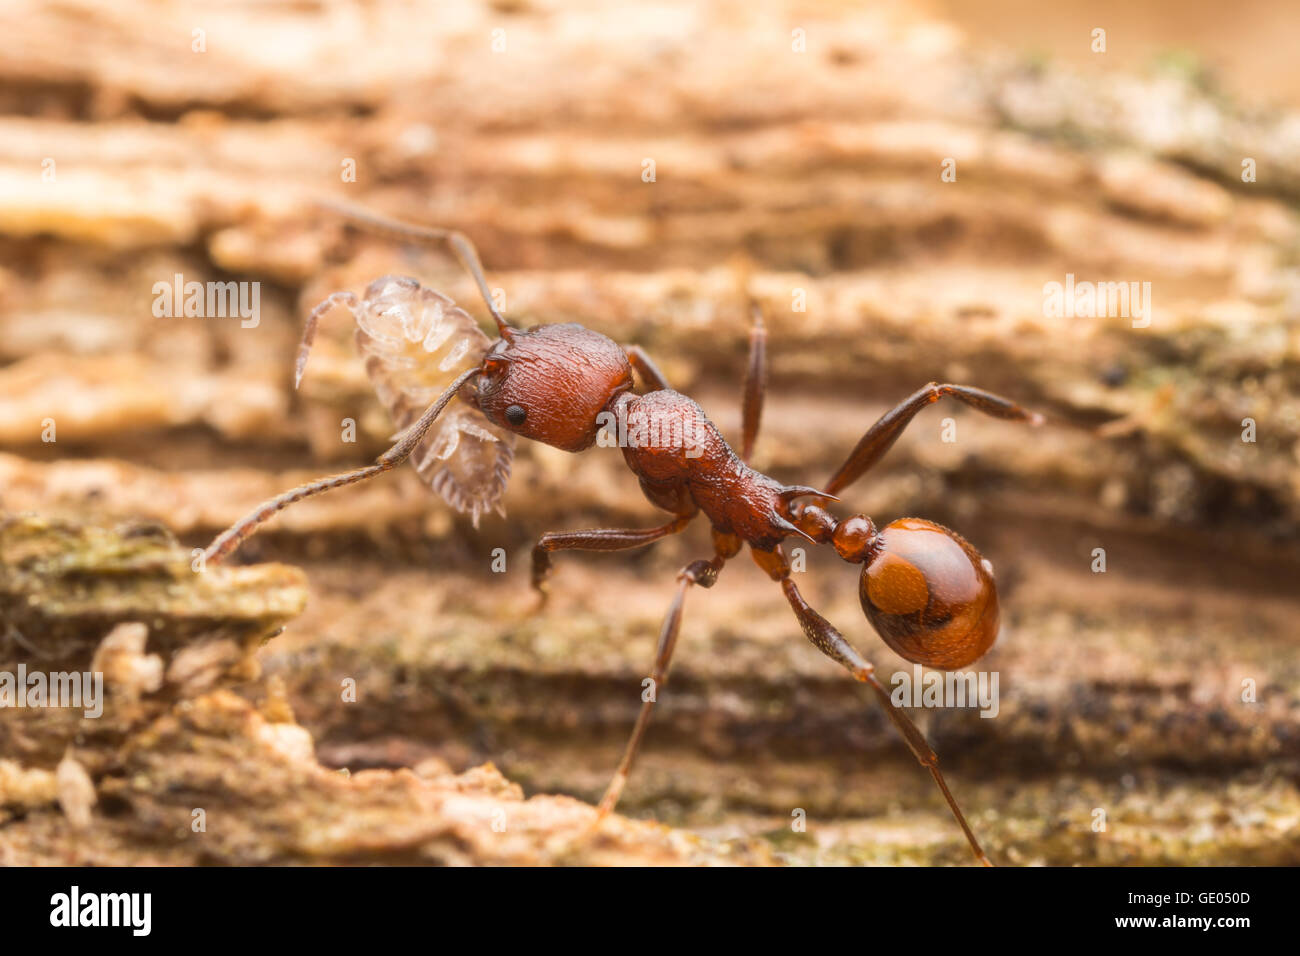 A Spine-waisted Ant (Aphaenogaster tennesseensis) worker carries its scavenged food, a woodlouse, back to its nest. - Stock Image